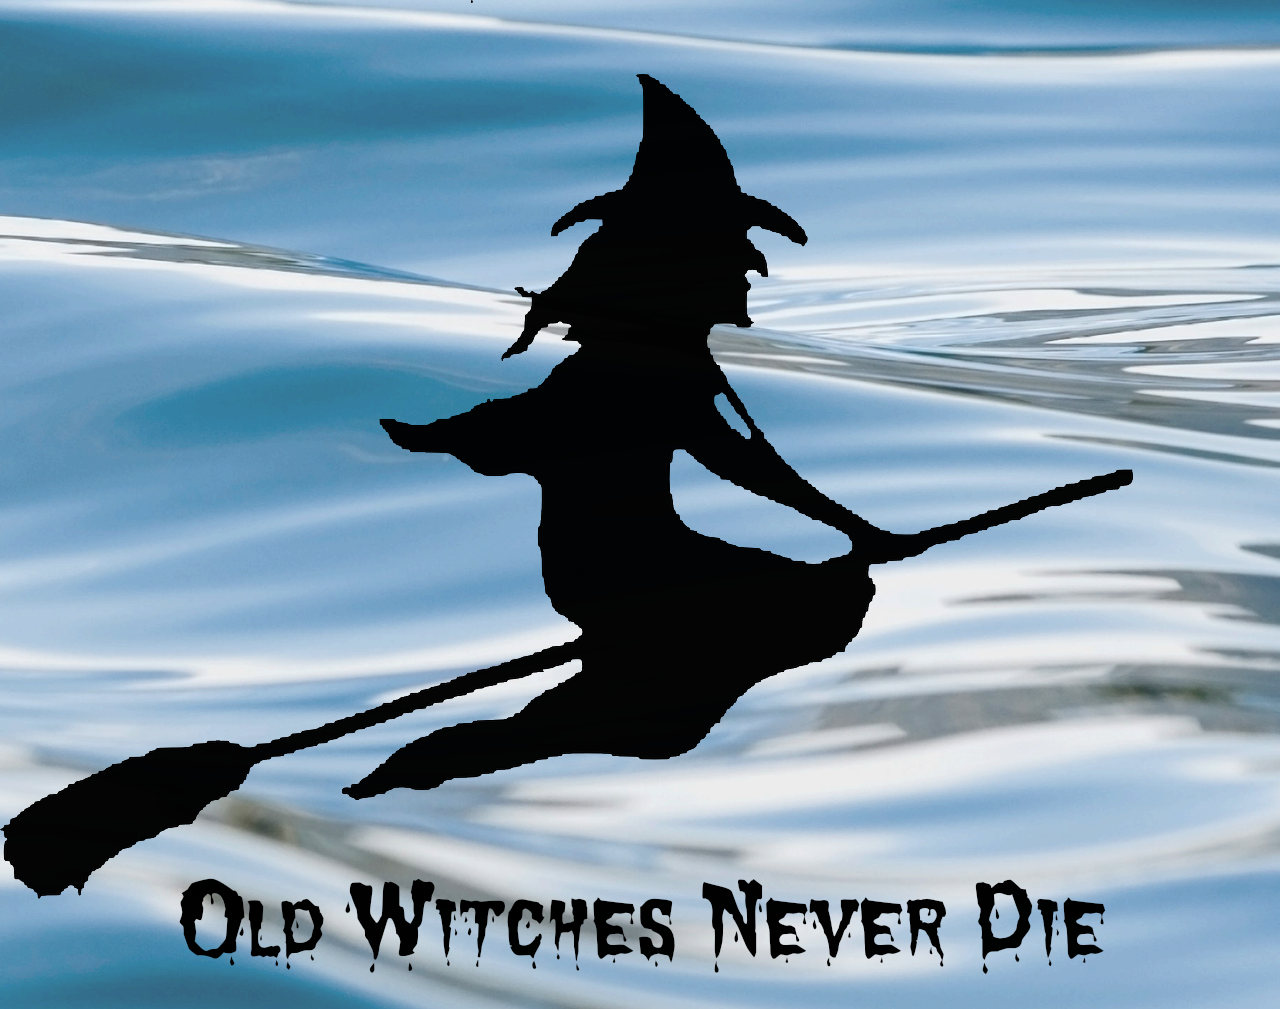 Old Witches Never Die